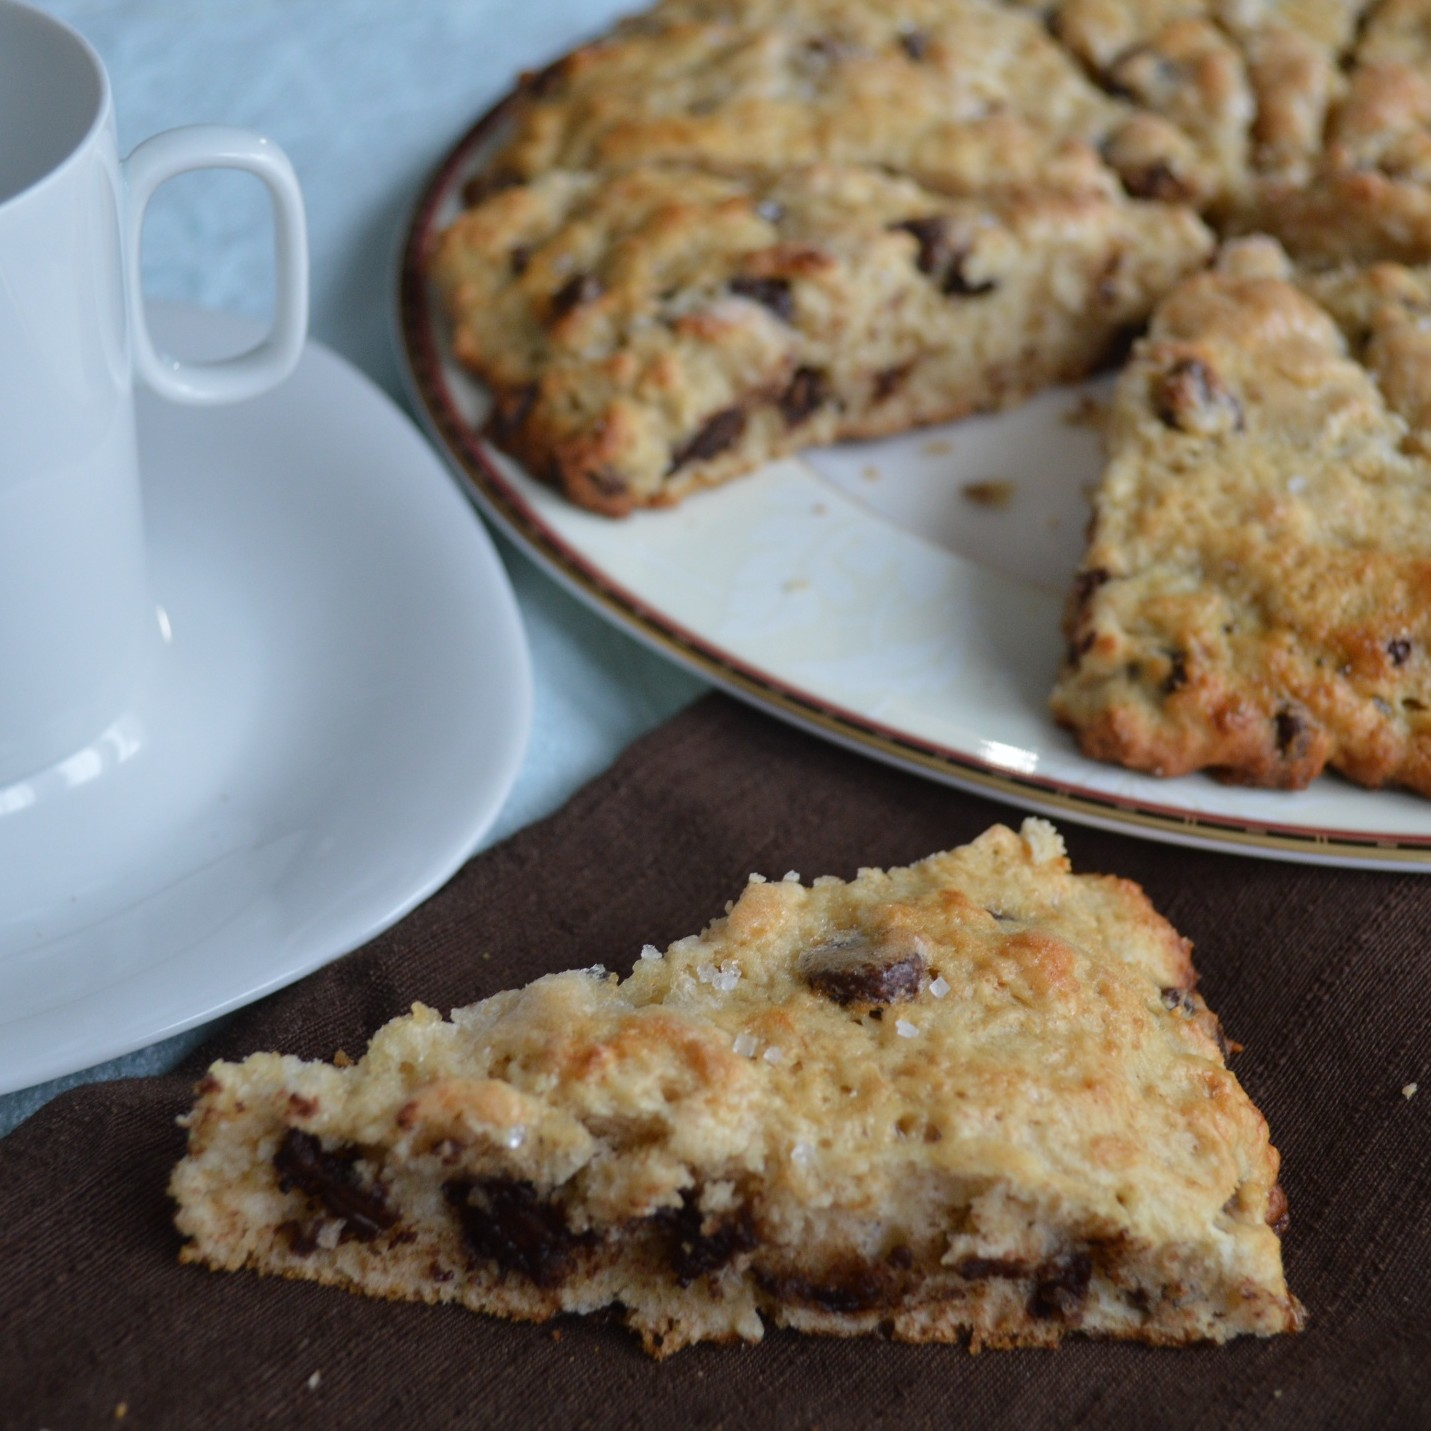 ... buttermilk scones are topped with chocolate for a pop of sweetness